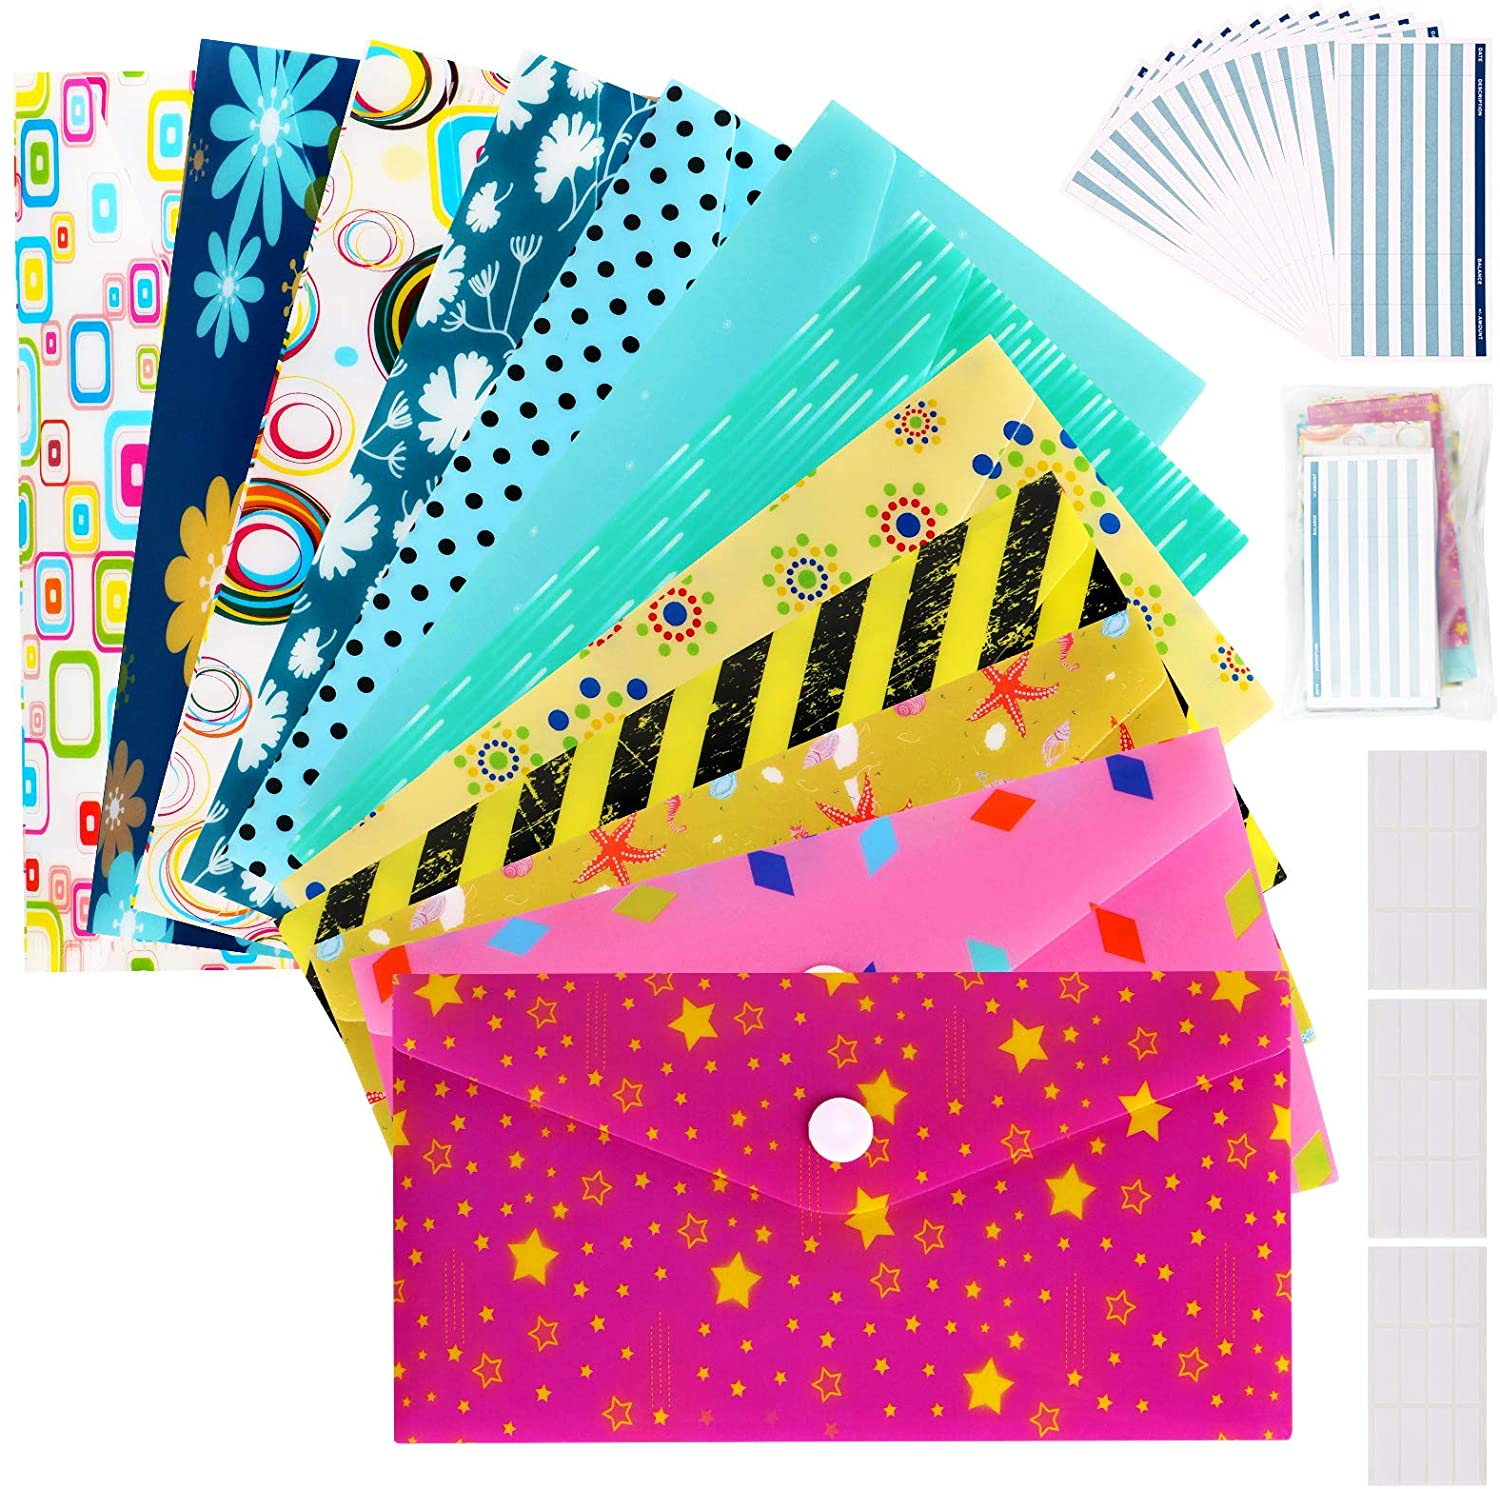 Cash Envelopes Plastic for Budget System - Money Envelopes for Budgeting and Saving, 12 Pack of Assorted Colors, Tear and Water Resistant, Includes 12 Expense Tracking Budget Sheets & 3 Label Sheets : Office Products